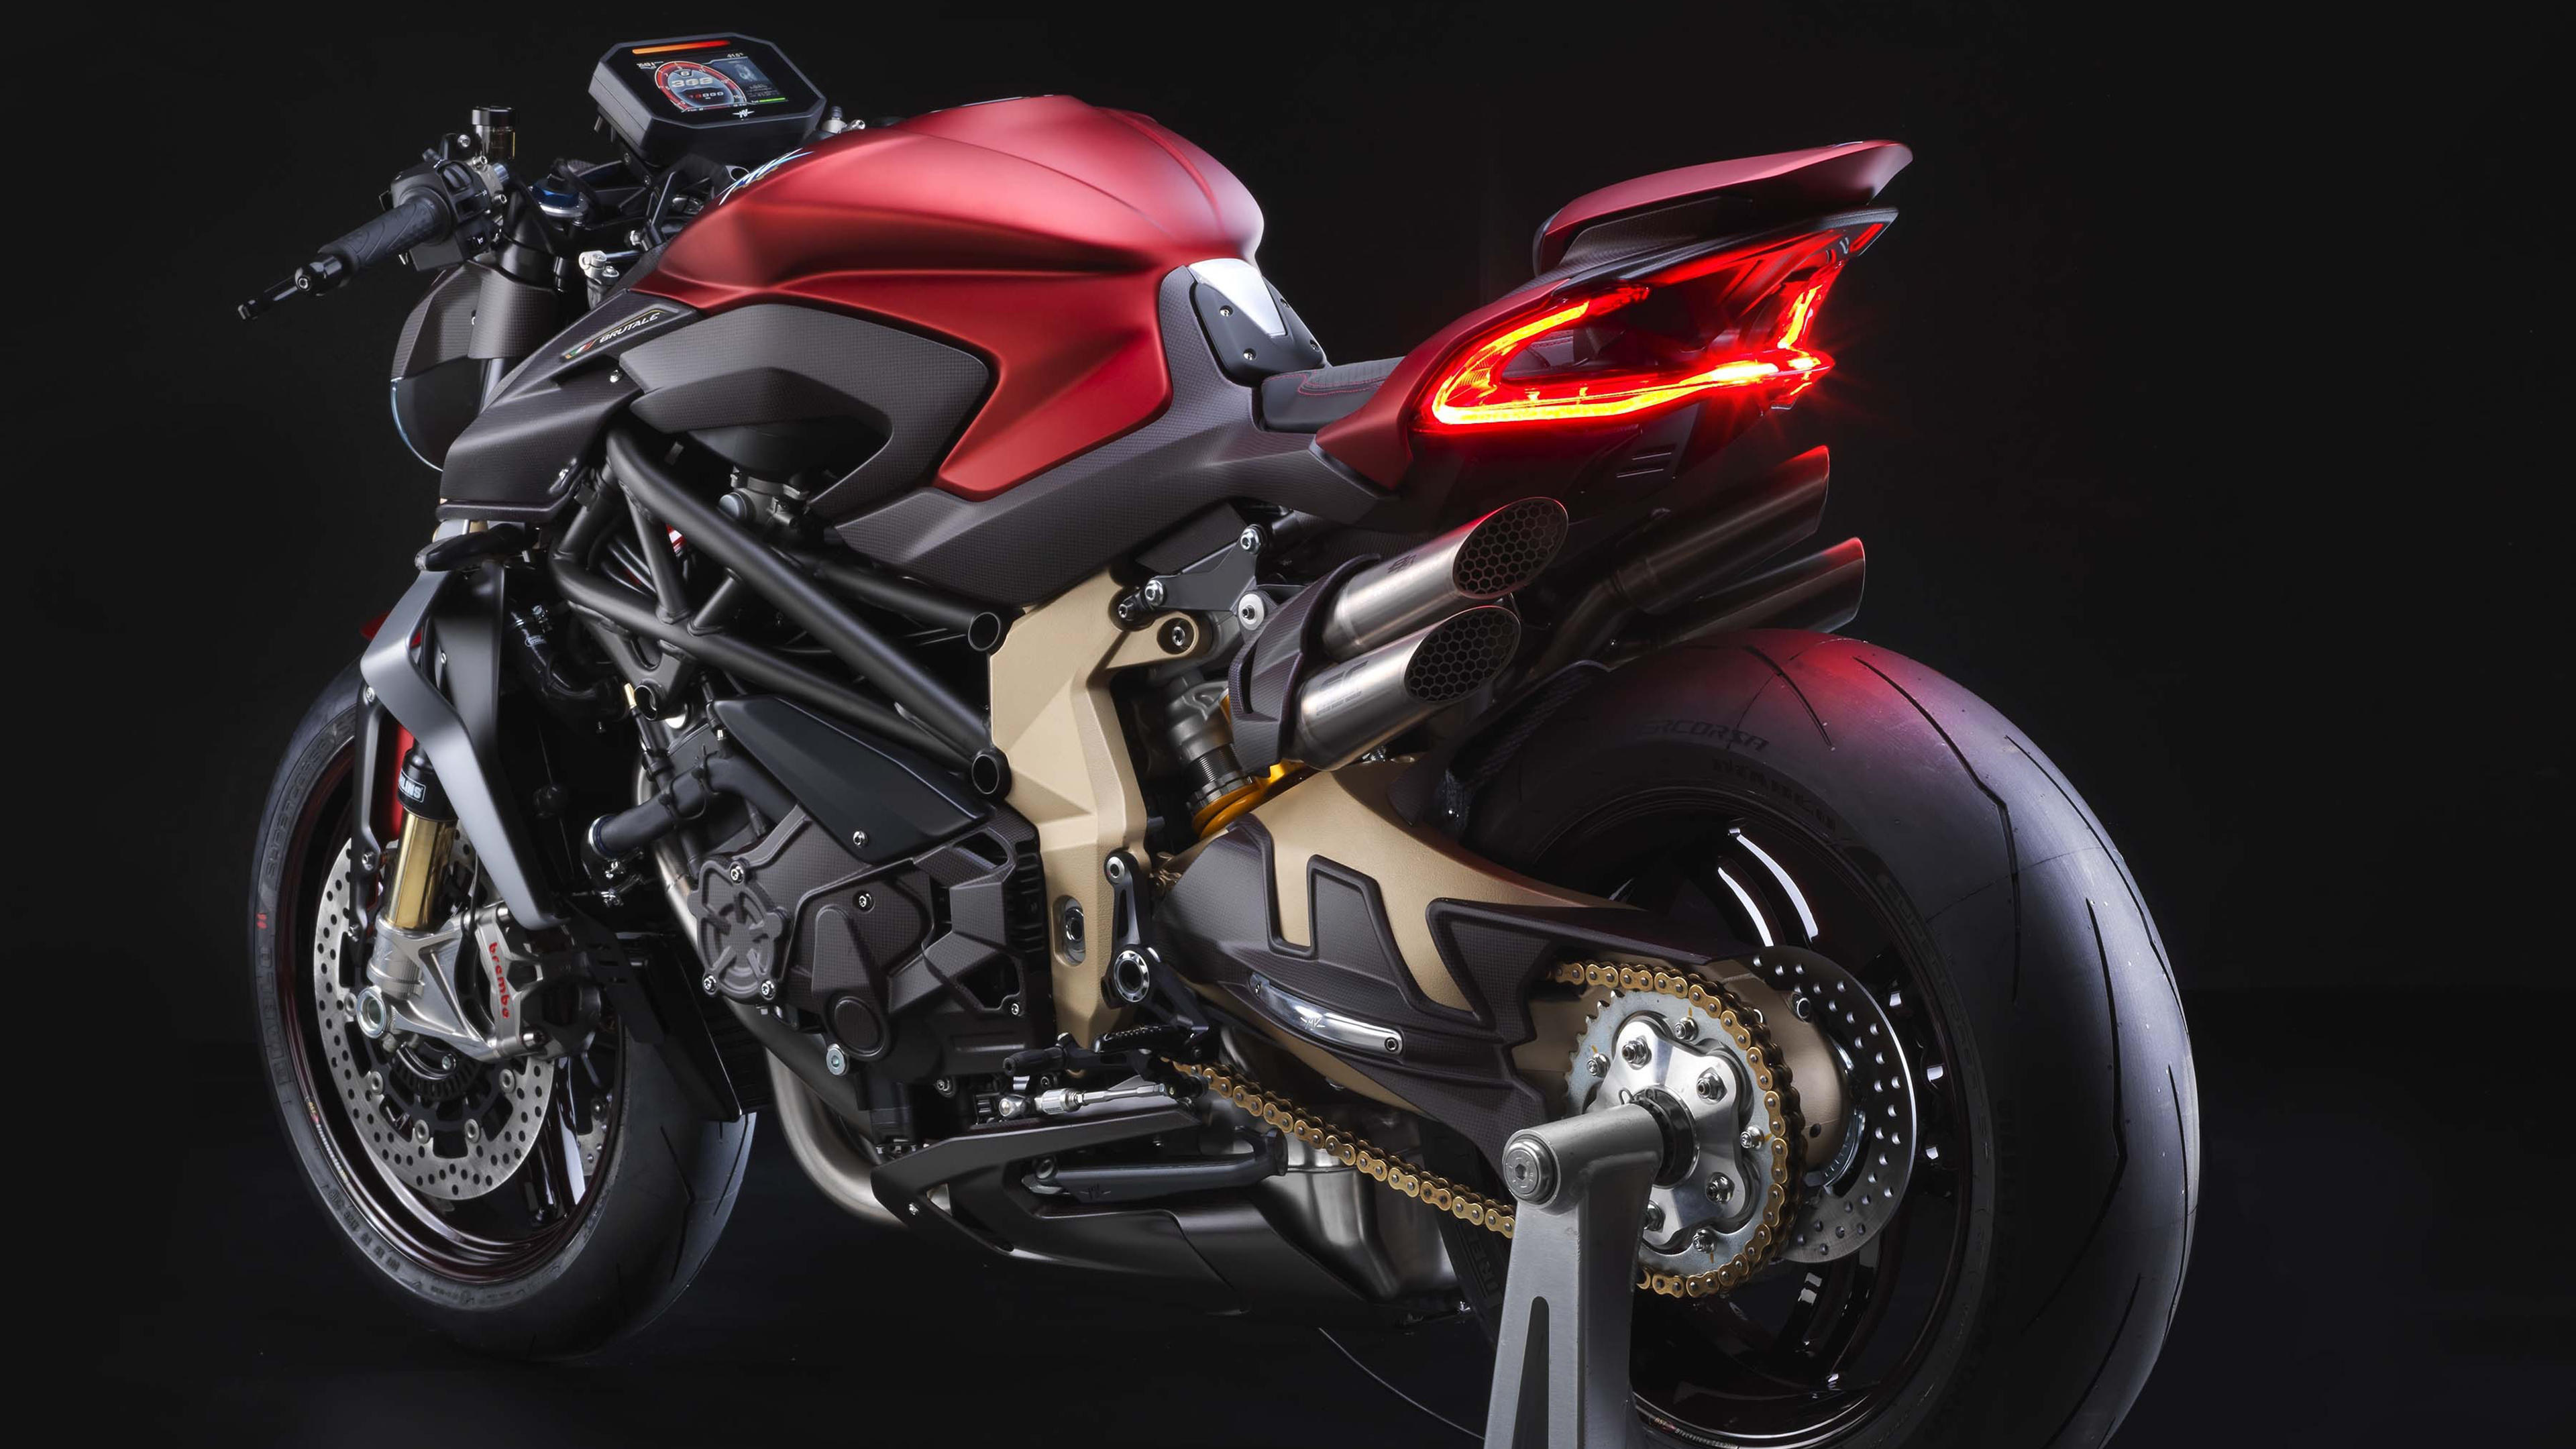 2019 MV Agusta Brutale 1000 Serie Oro 4K Wallpapers